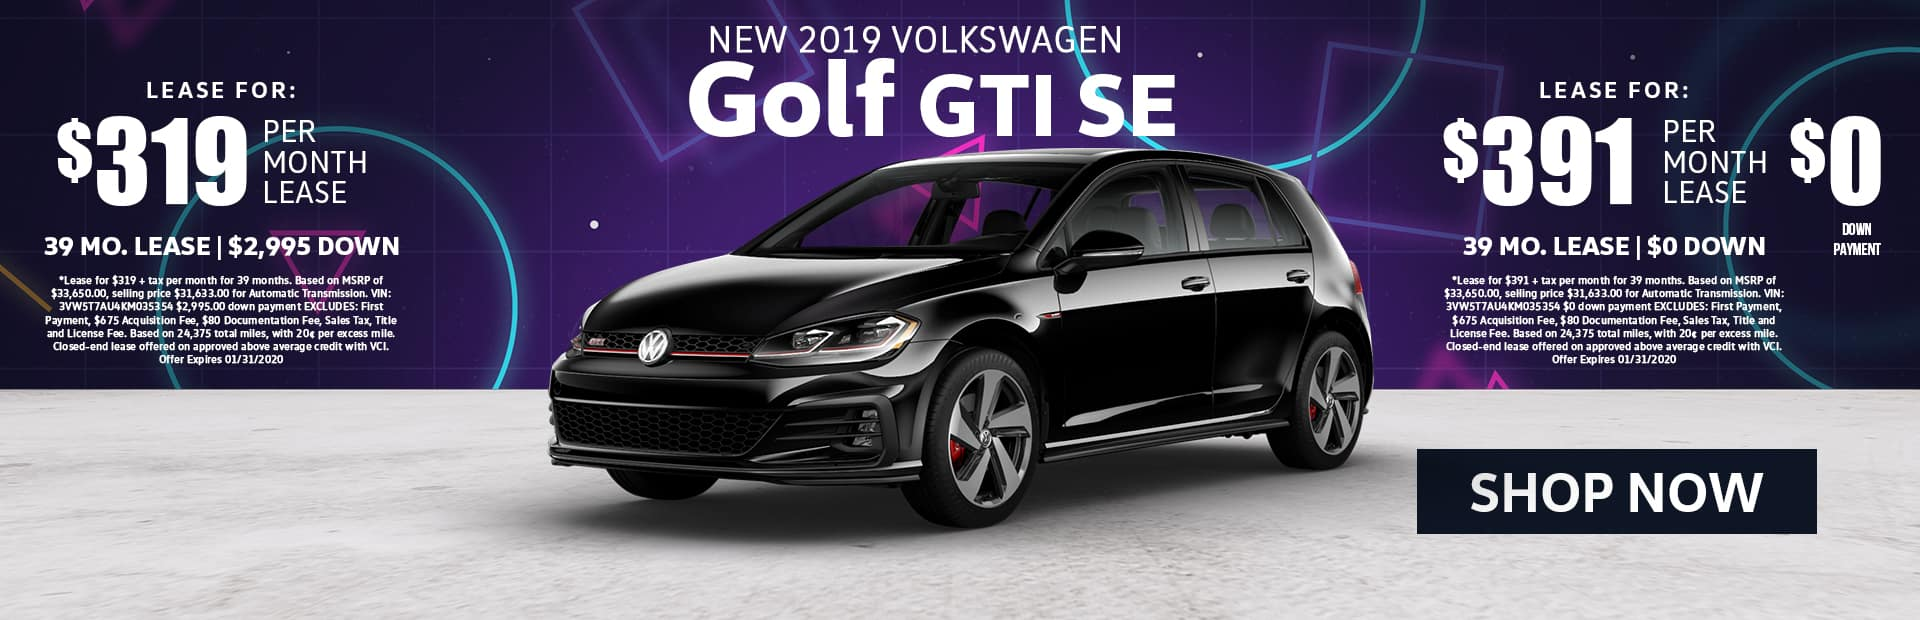 2019 Golf GTI SE Lease Special